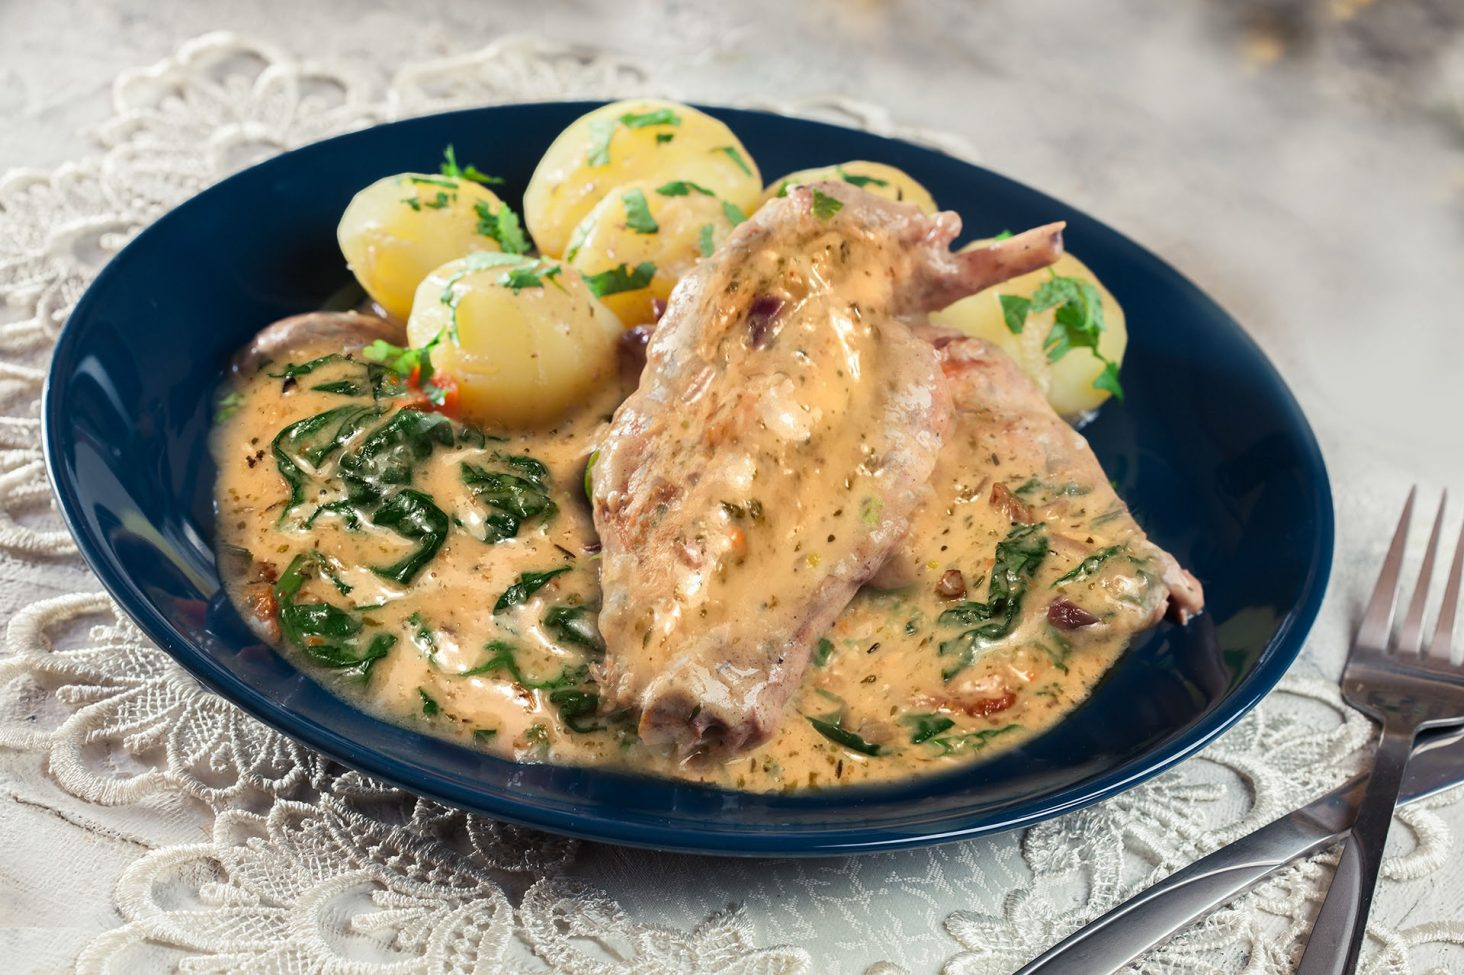 Stewed rabbit legs with vegetables